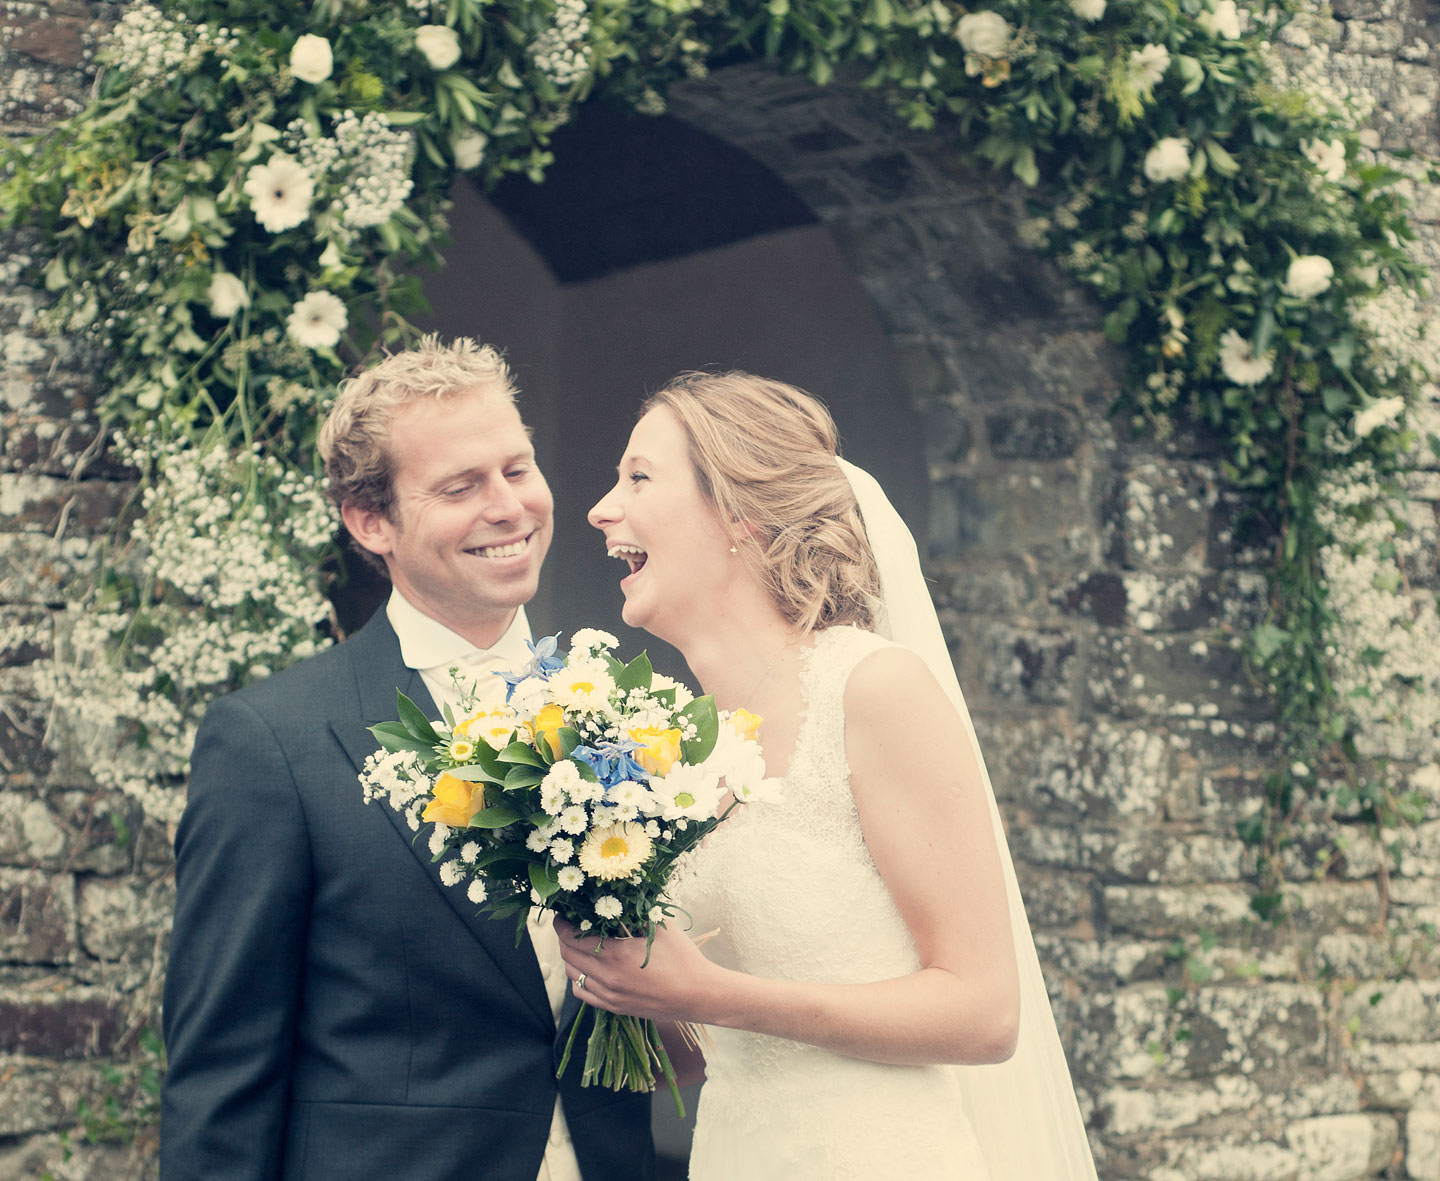 Peter Willows wedding Photographer Bournemouth Dorset  Devon foggy fun wedding 07828971143/info@peterwillows.co.uk